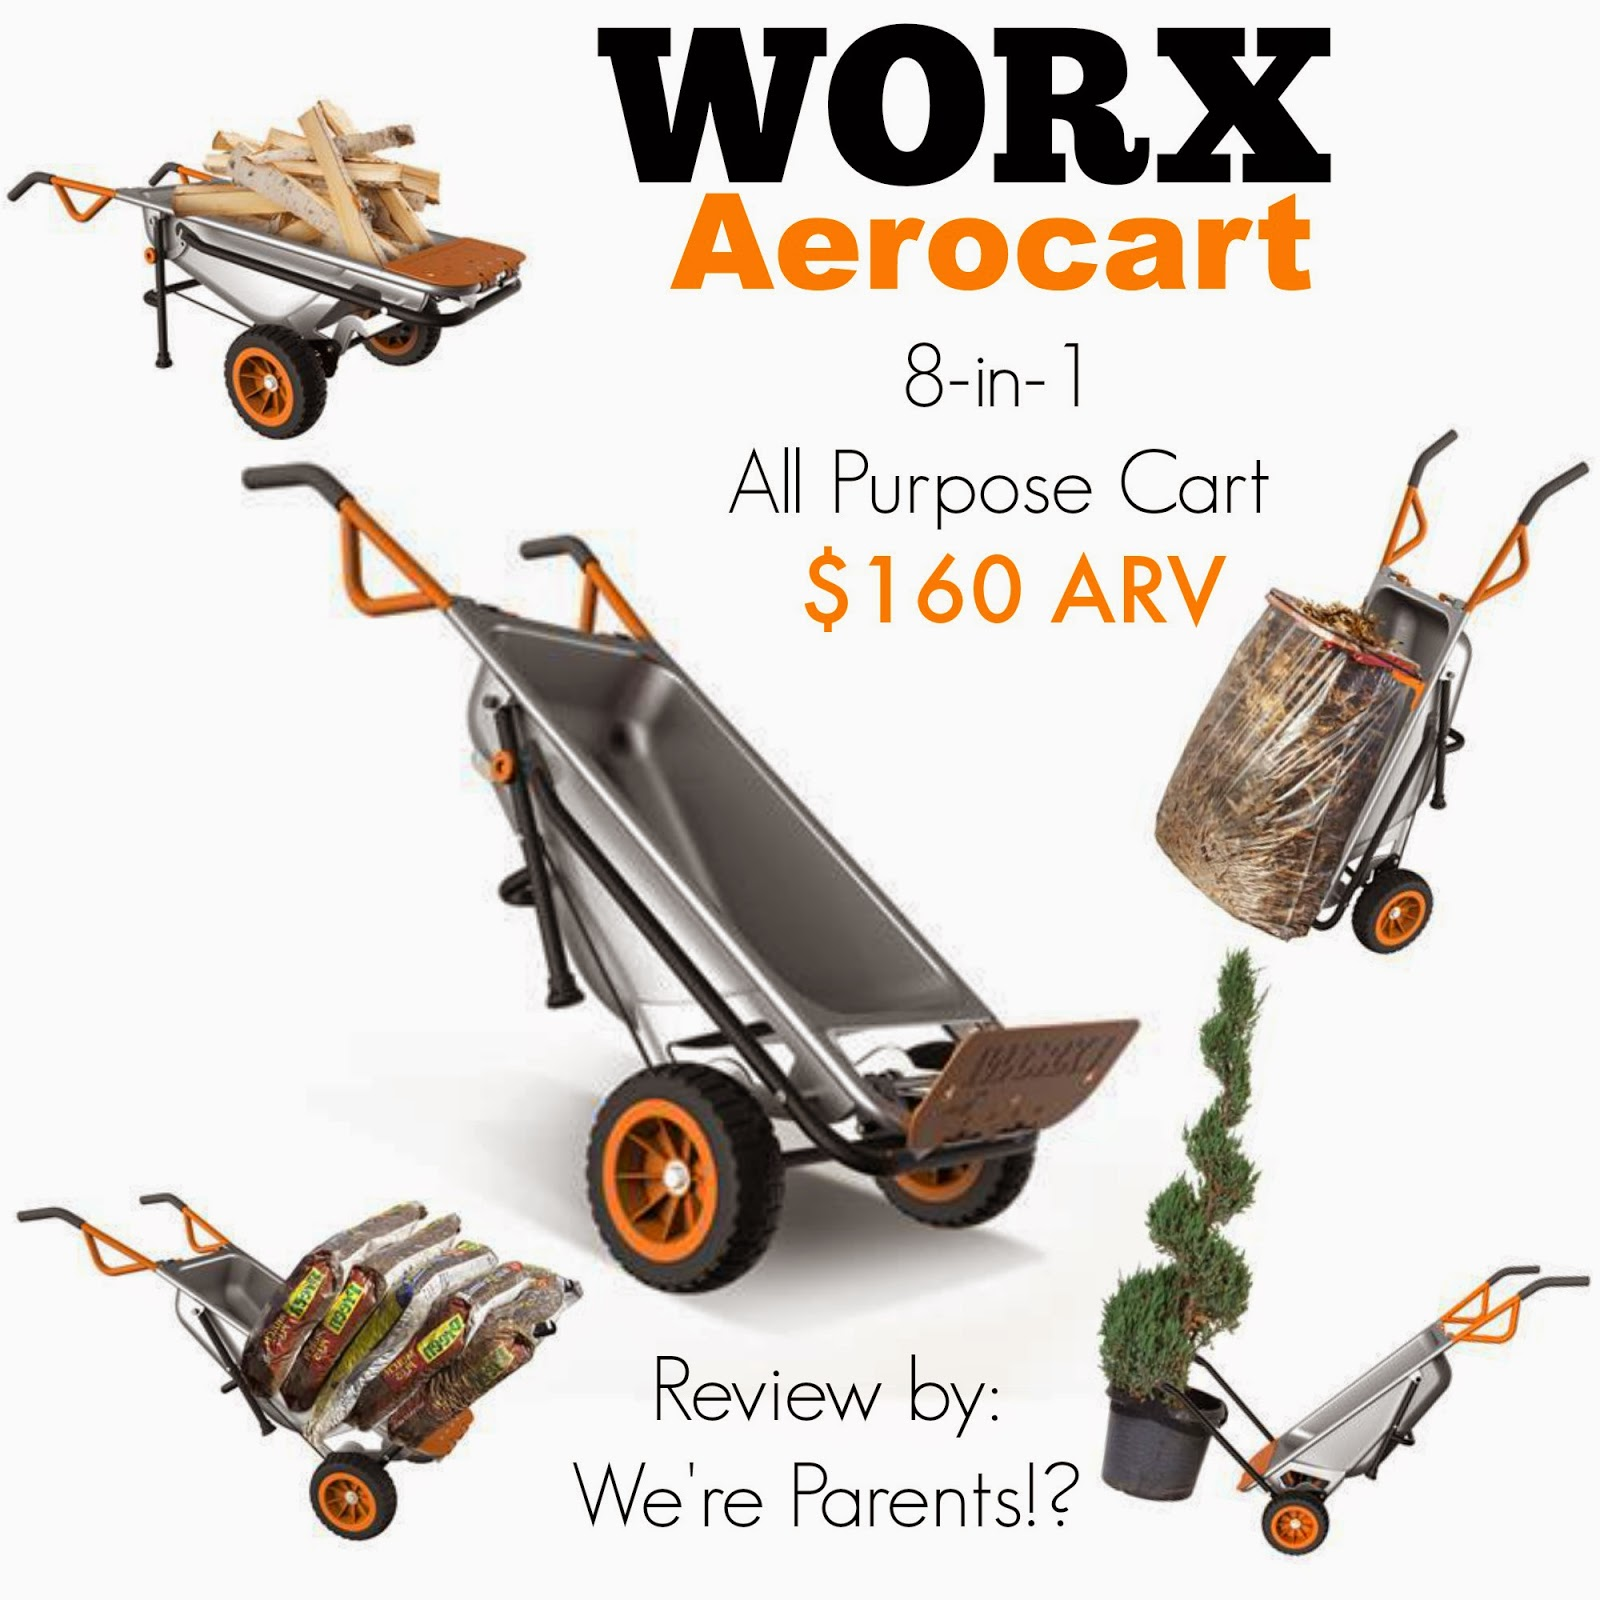 WORX Aerocart 8 in 1 Ultimate Cart Giveaway